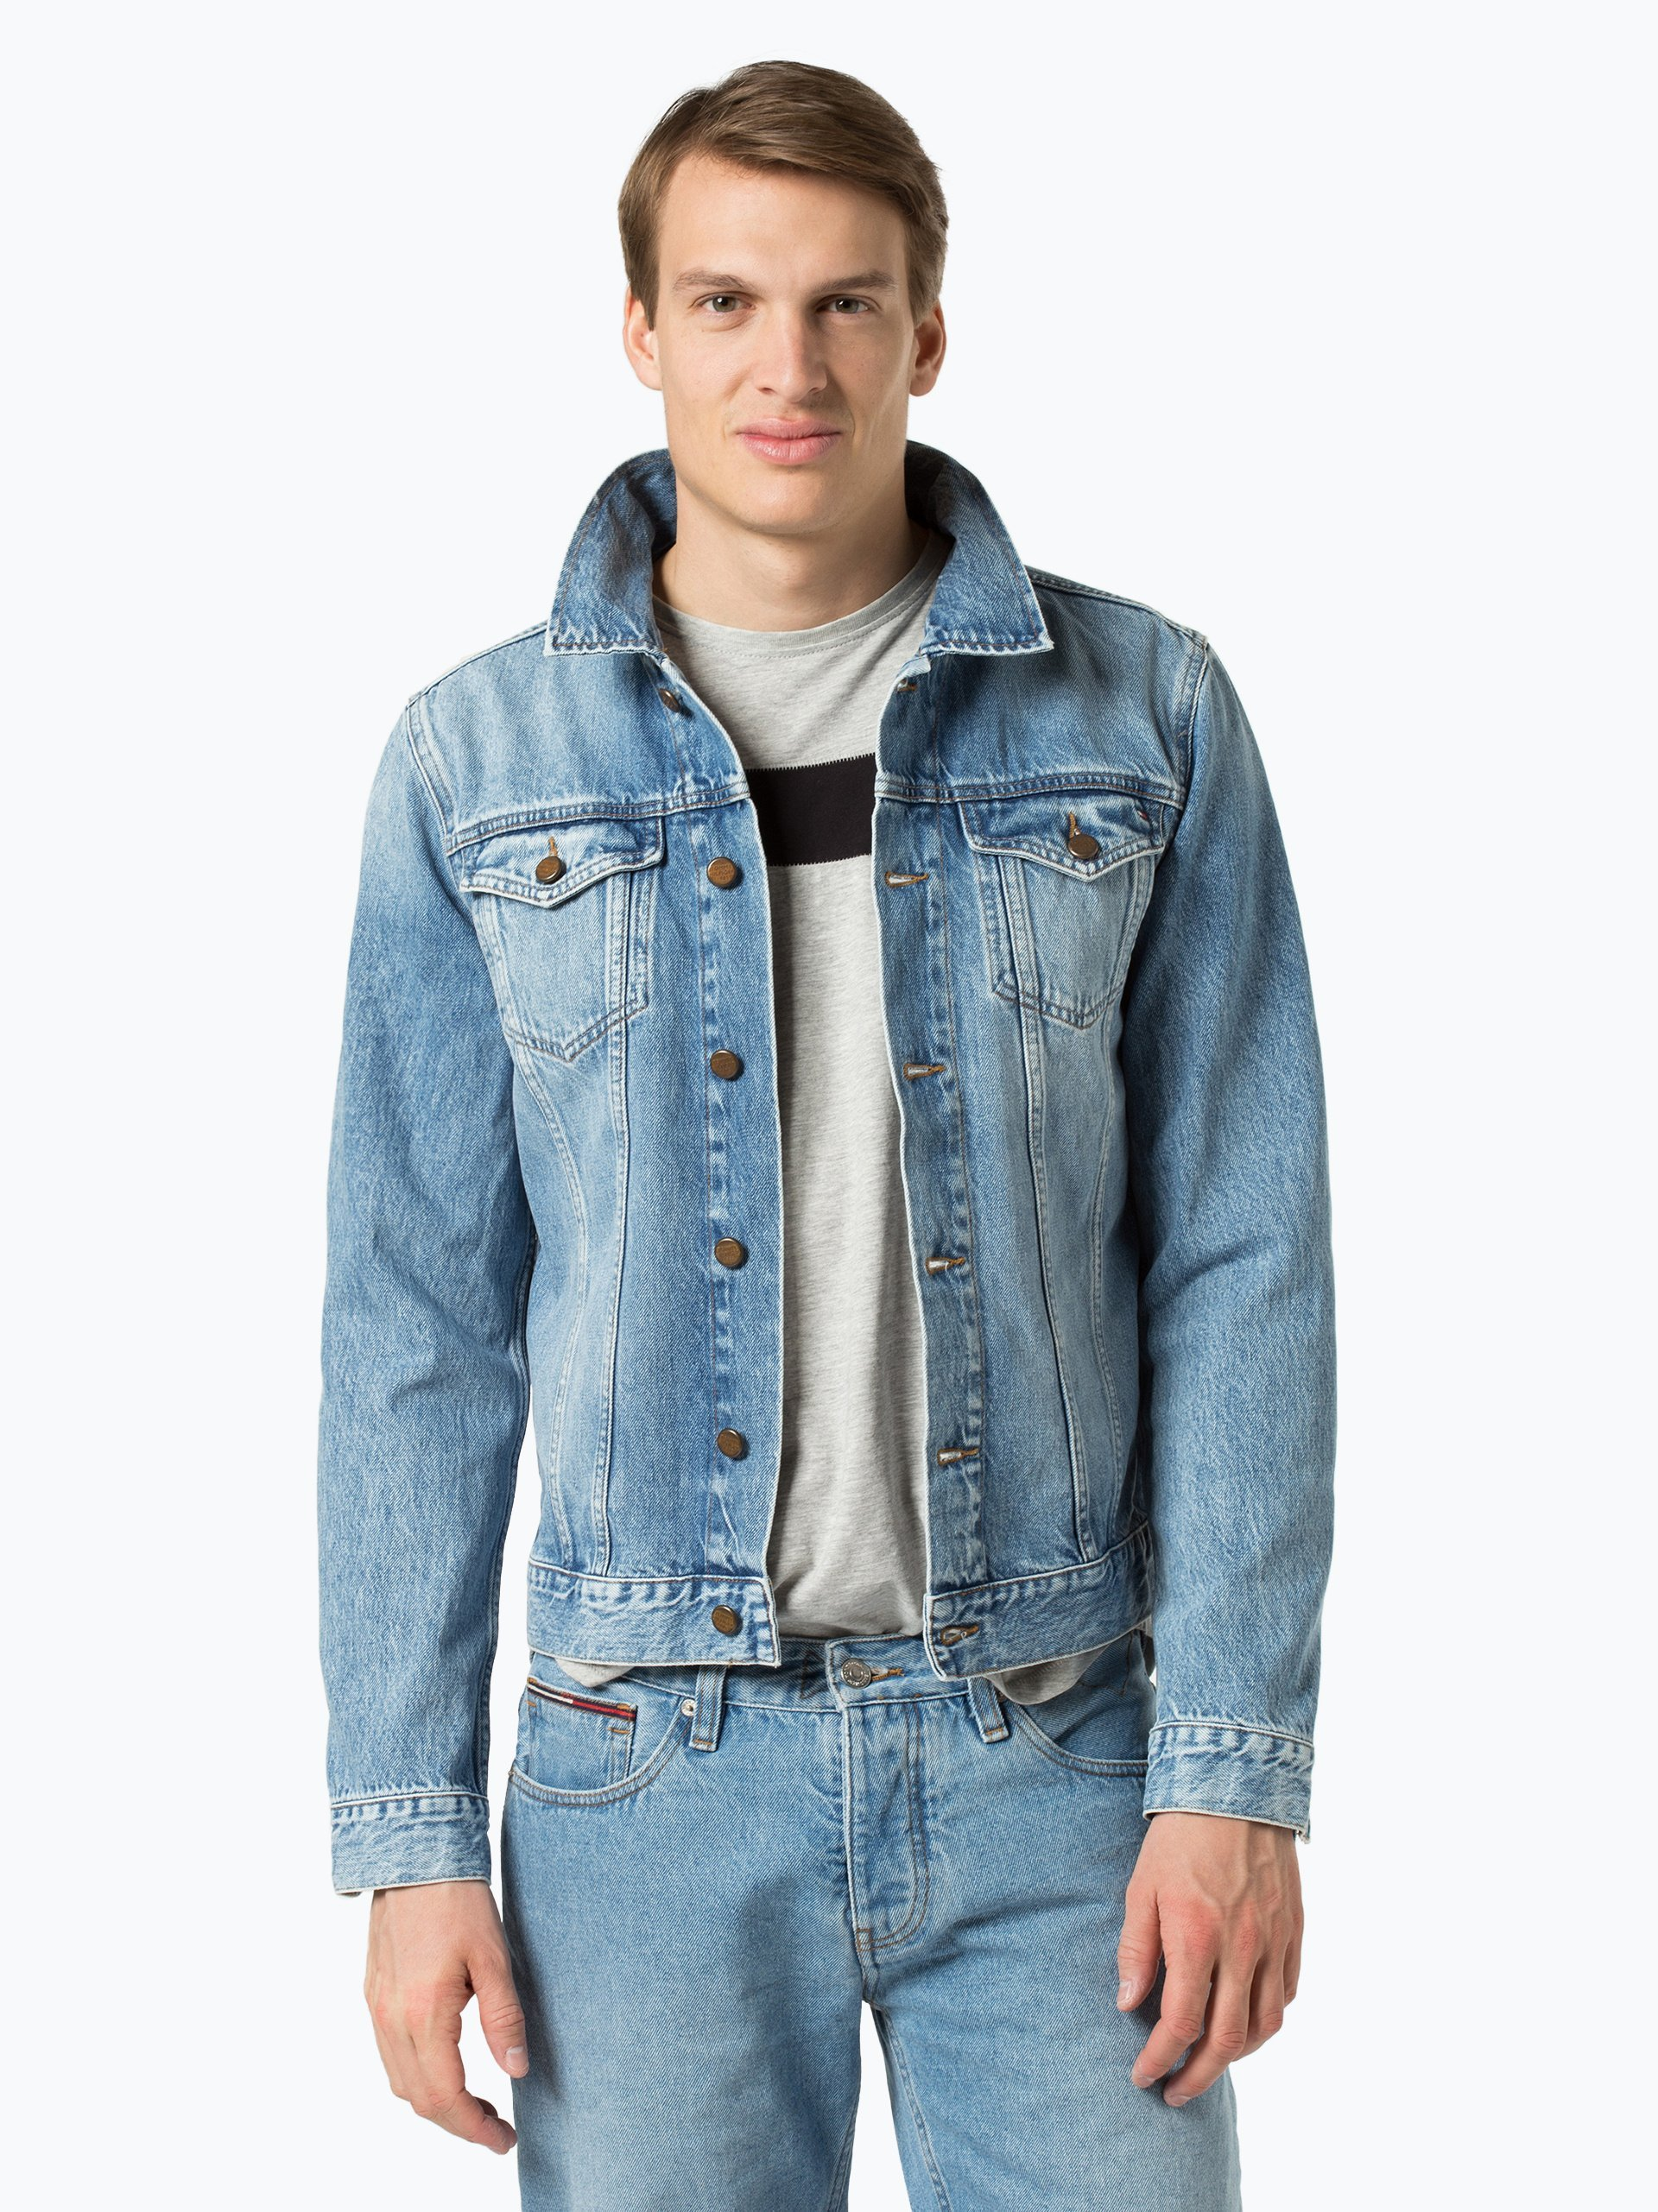 tommy hilfiger herren jeansjacke denim uni online kaufen vangraaf com. Black Bedroom Furniture Sets. Home Design Ideas